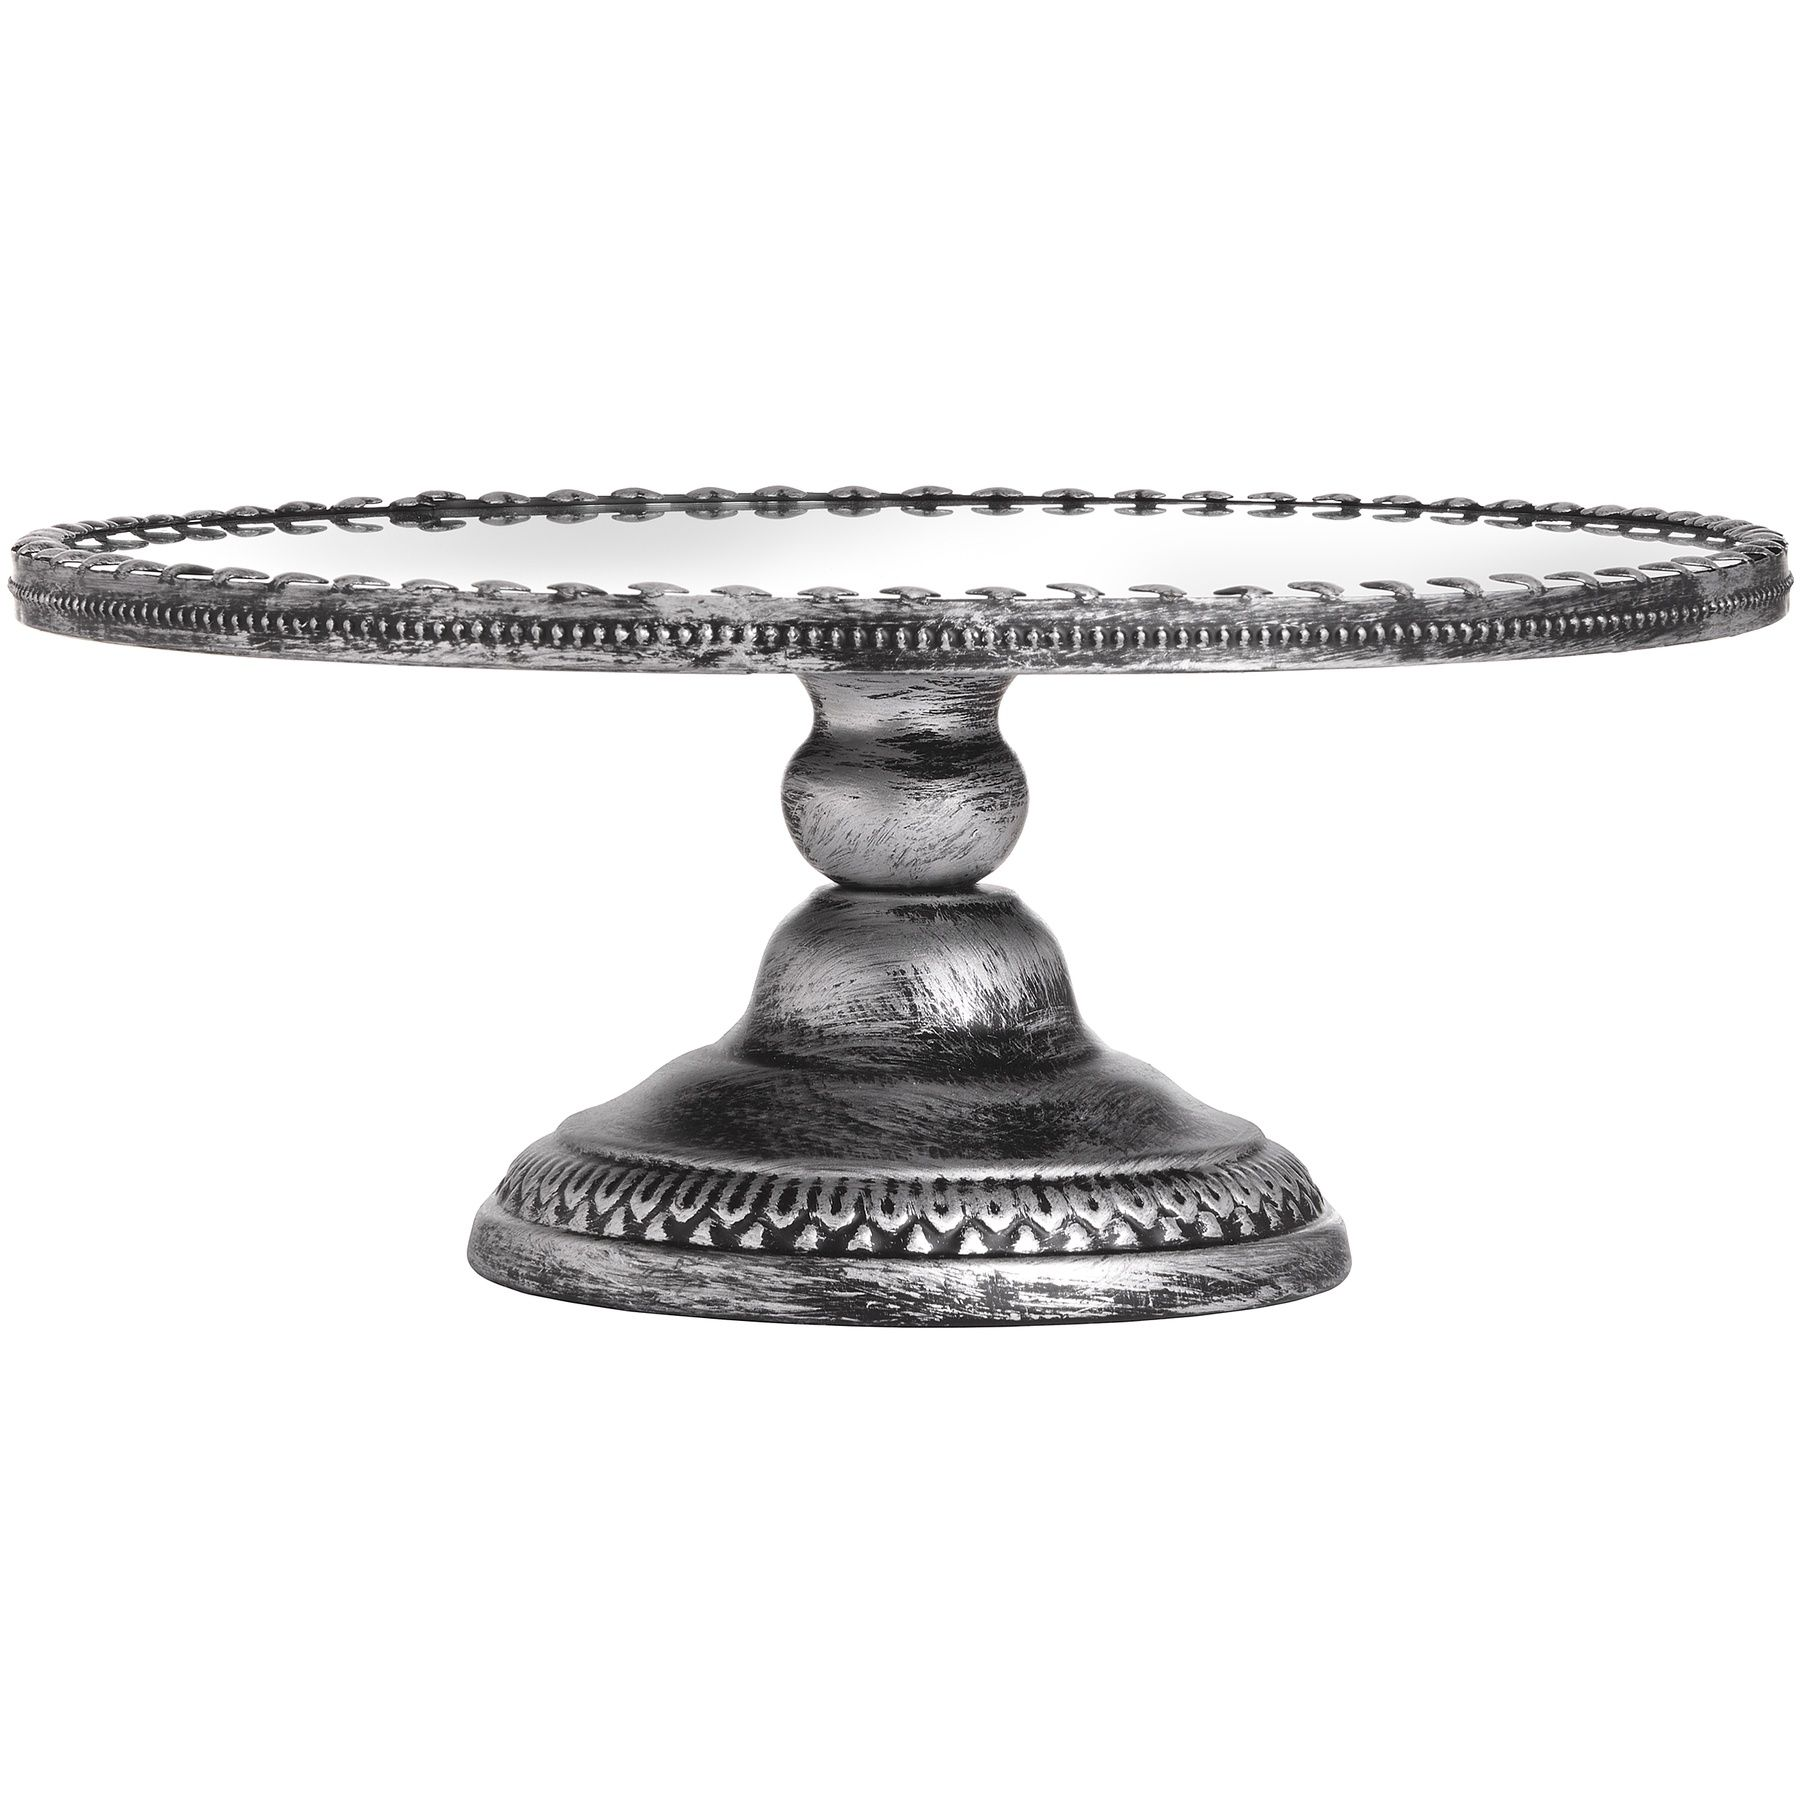 Antique mirrored heart cake stand in brushed silver